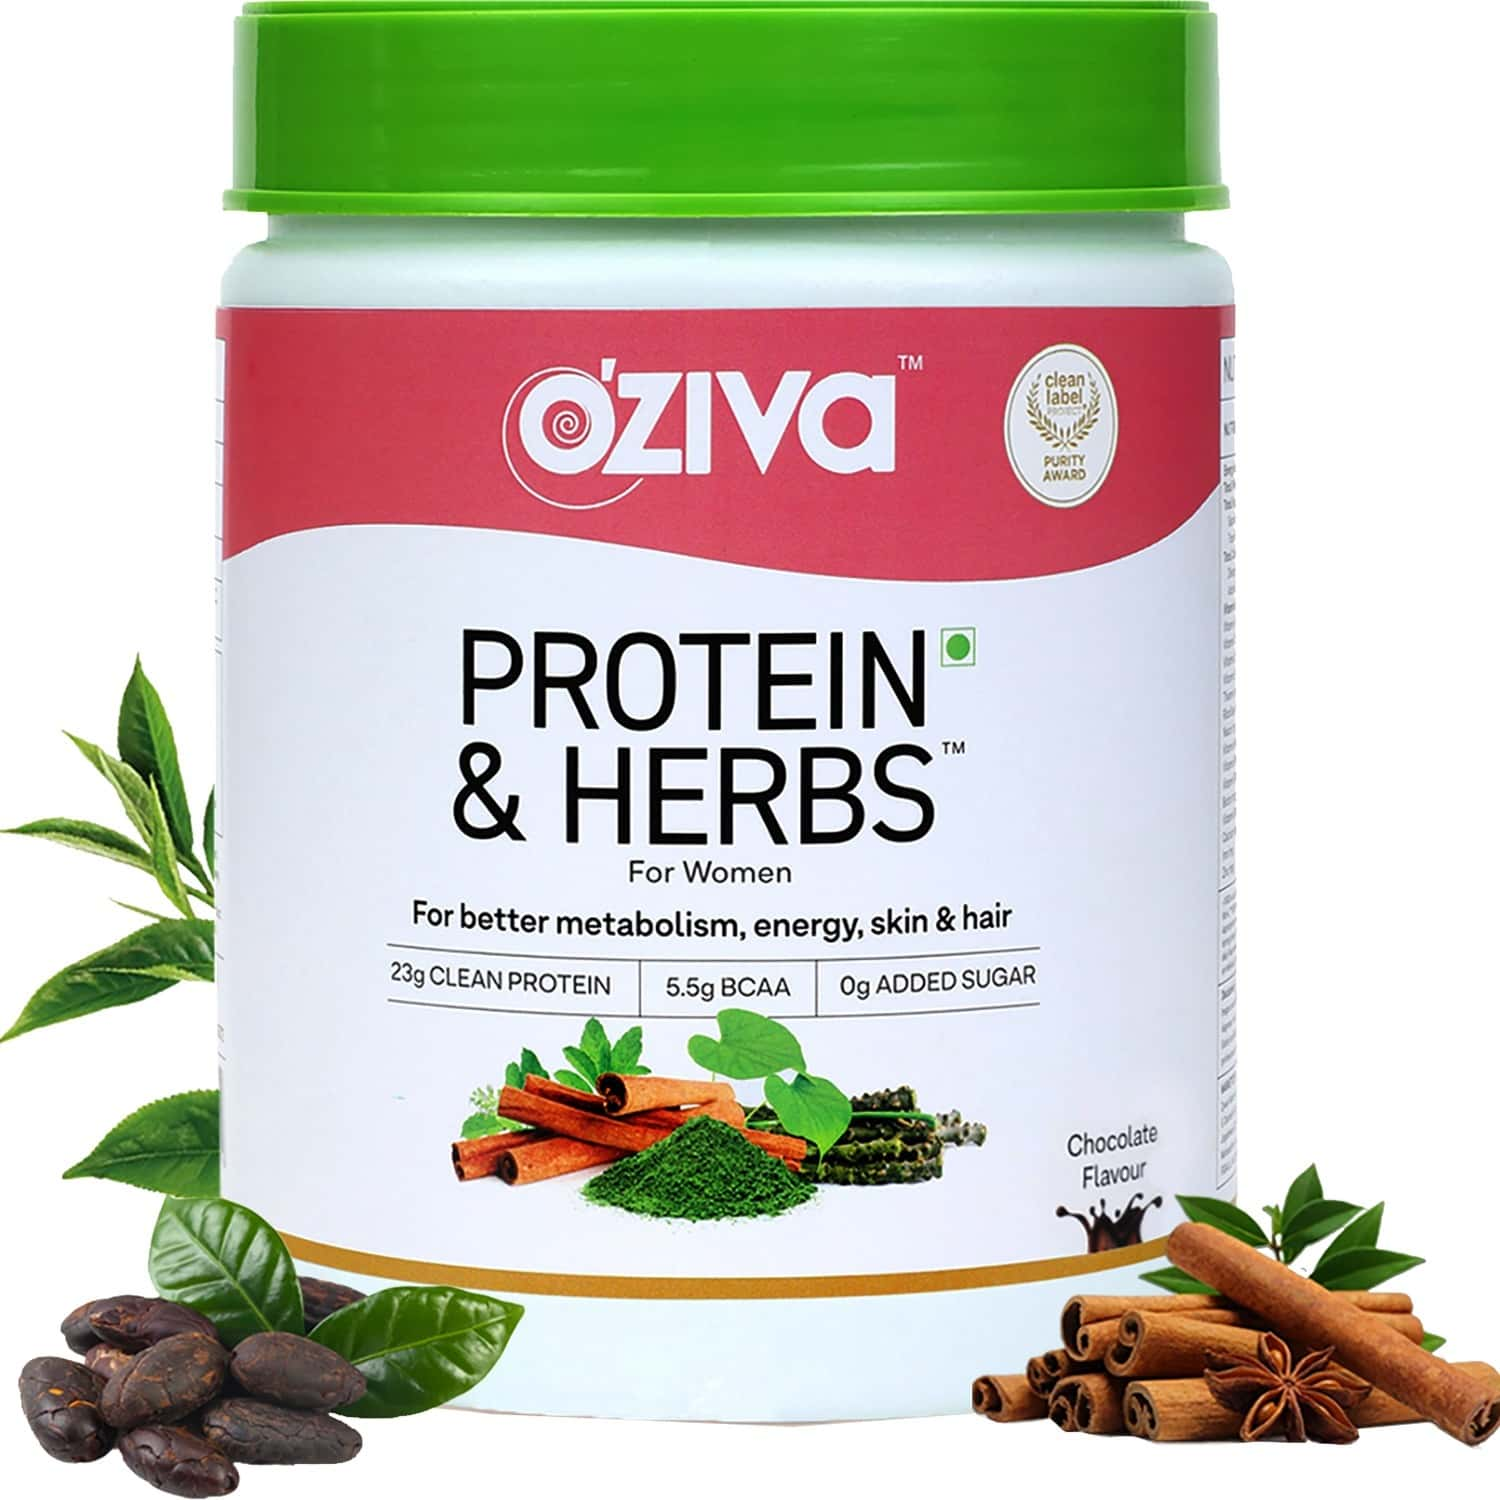 Oziva Protein & Herbs For Women - Natural Protein With Whey, Ayurvedic Herbs & Multivitamins For Better Metabolism, Skin & Hair- 500 Gm, Chocolate